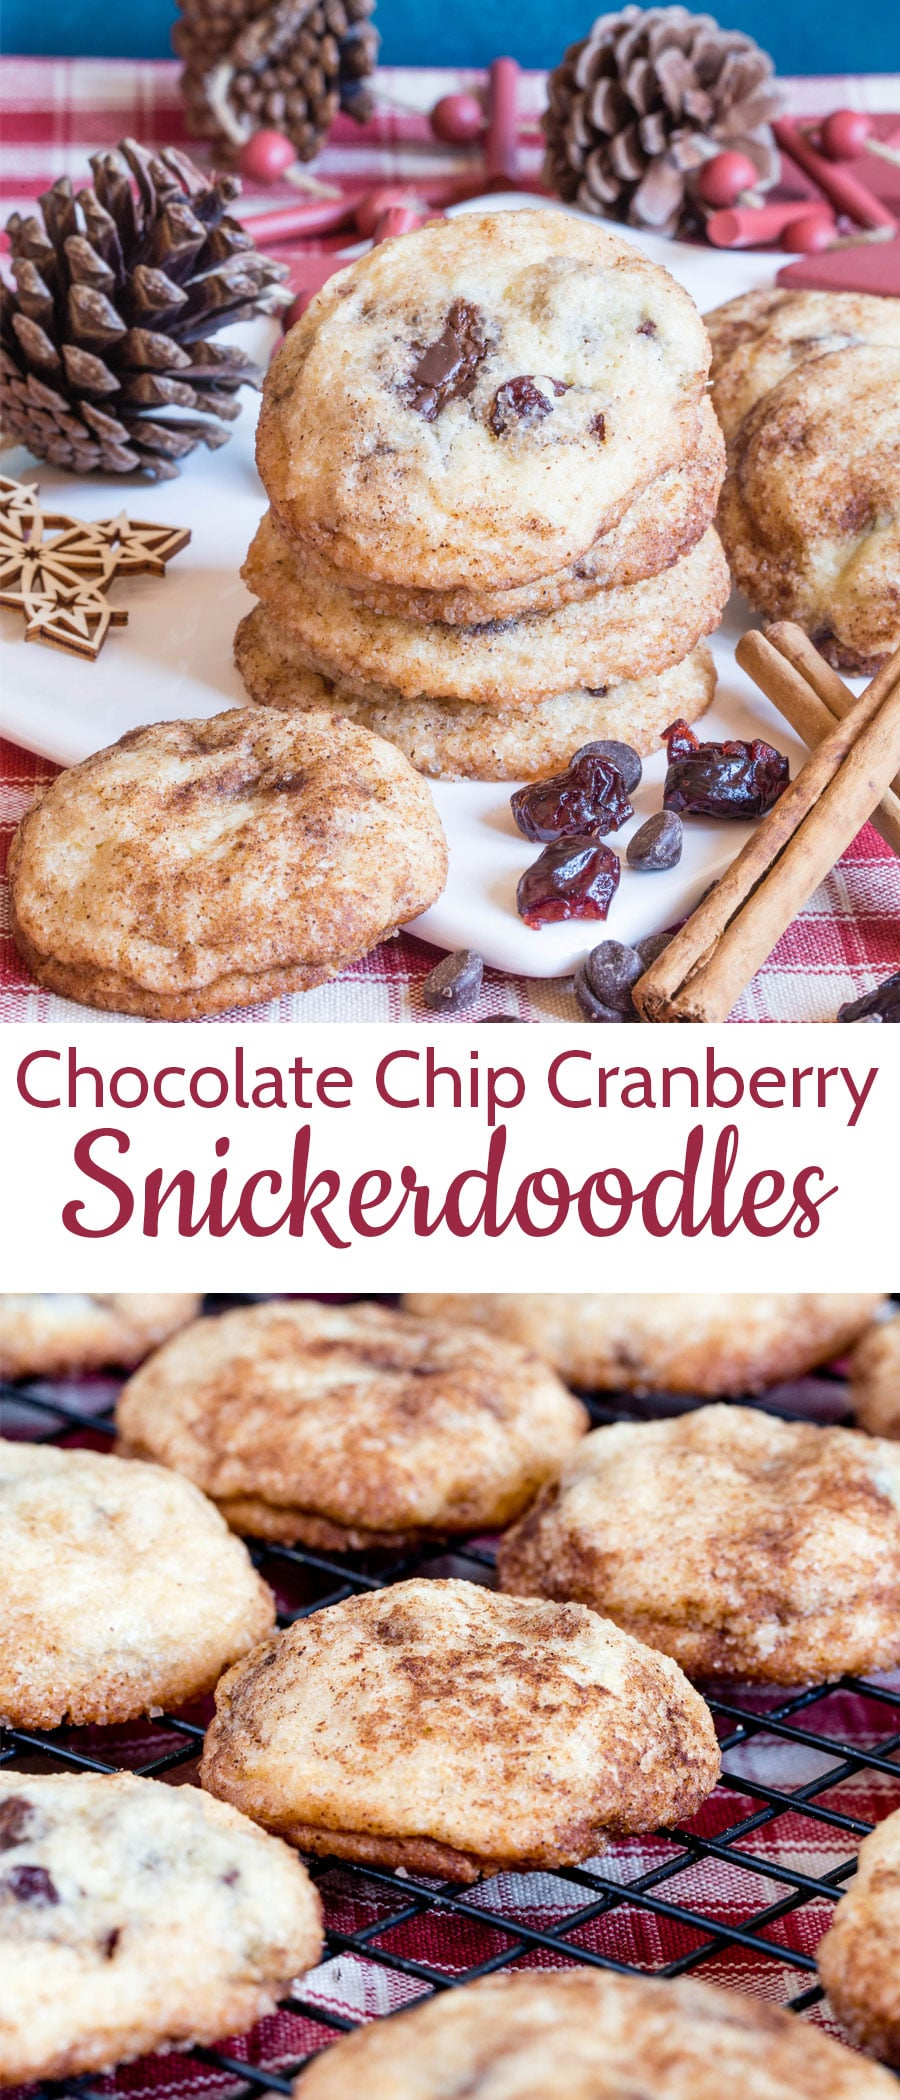 Stacked cranberry and chocolate snickerdoodles dusted with cinnamon and surrounded by cinnamon sticks, dried cranberries, and pine cones on a red and white checked cloth with a text overlay.